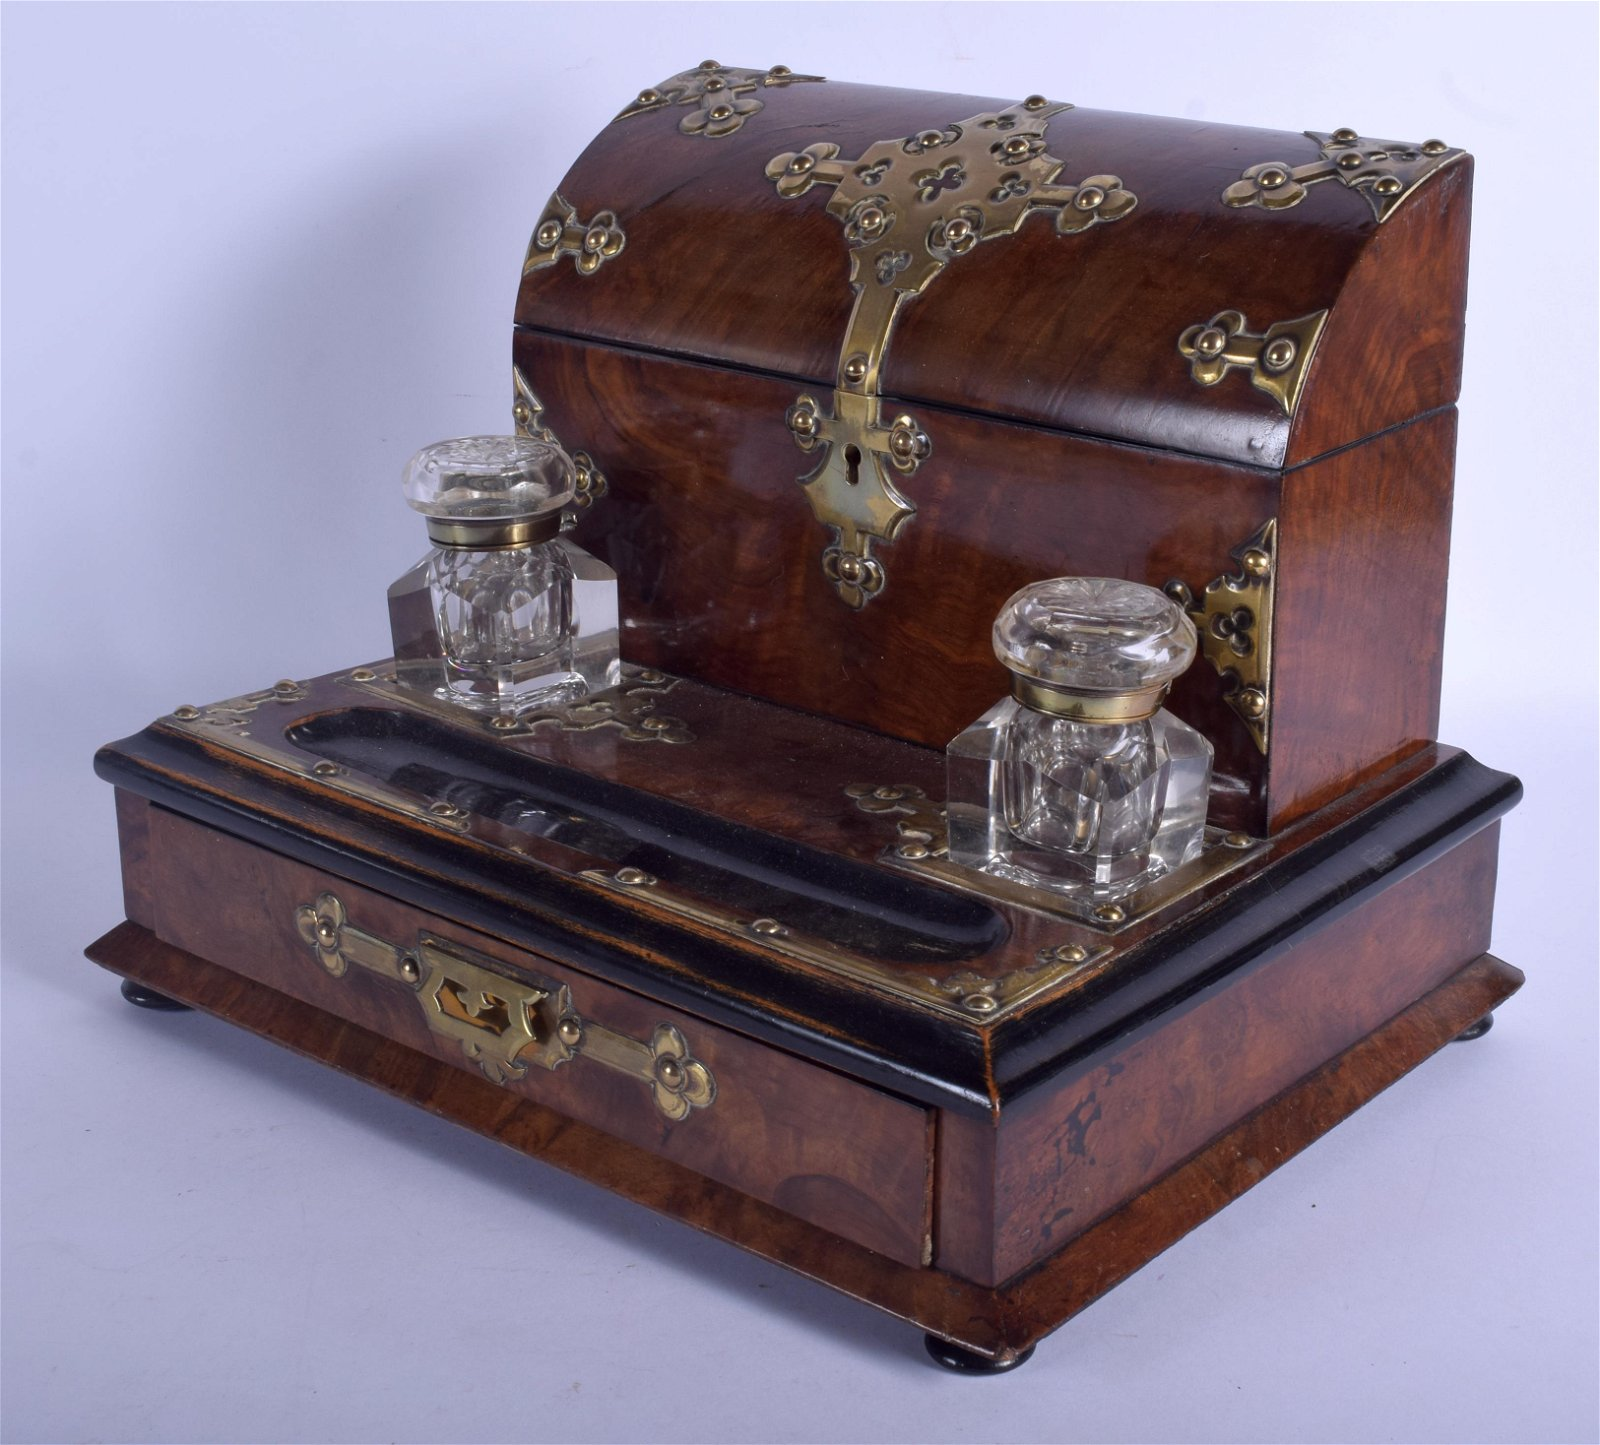 A LATE VICTORIAN BURR WALNUT BRASS BOUND INKWELL in the